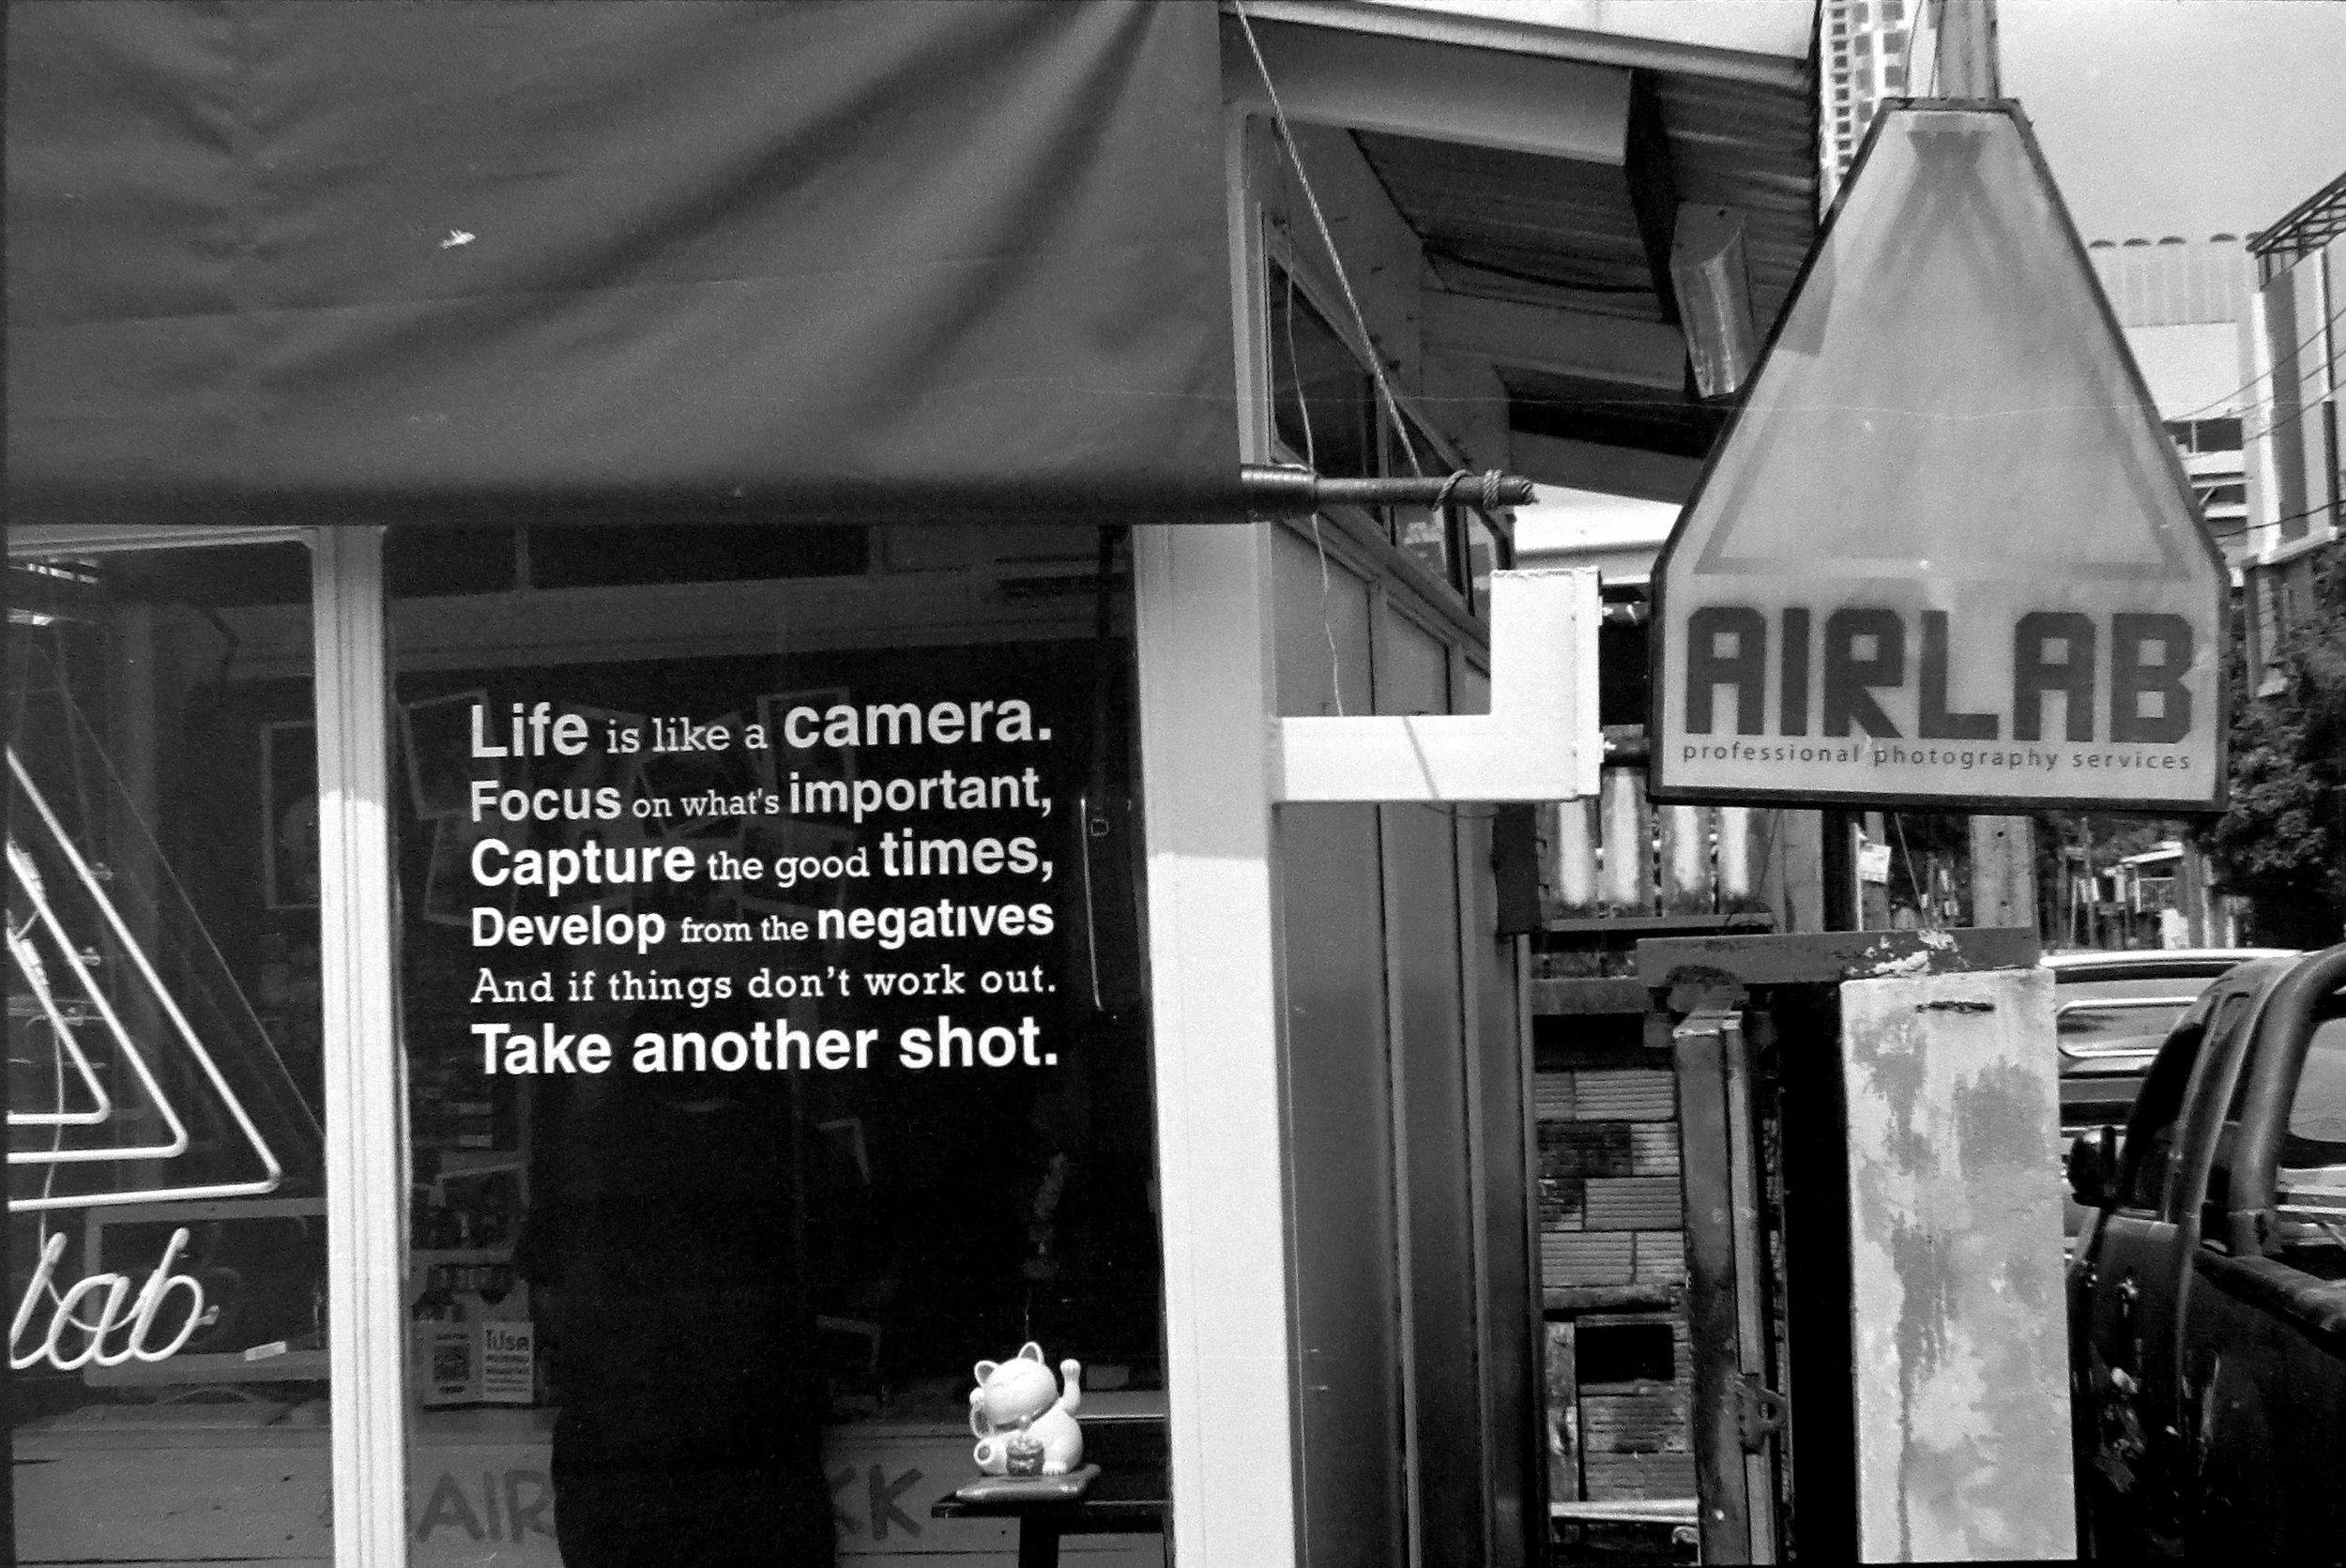 Chromacomaphoto bangkok airlab film photography tri x iso 400 leica m2 summicron rigid super angulon 21mm 50mm black and white thailand street  (9).JPG